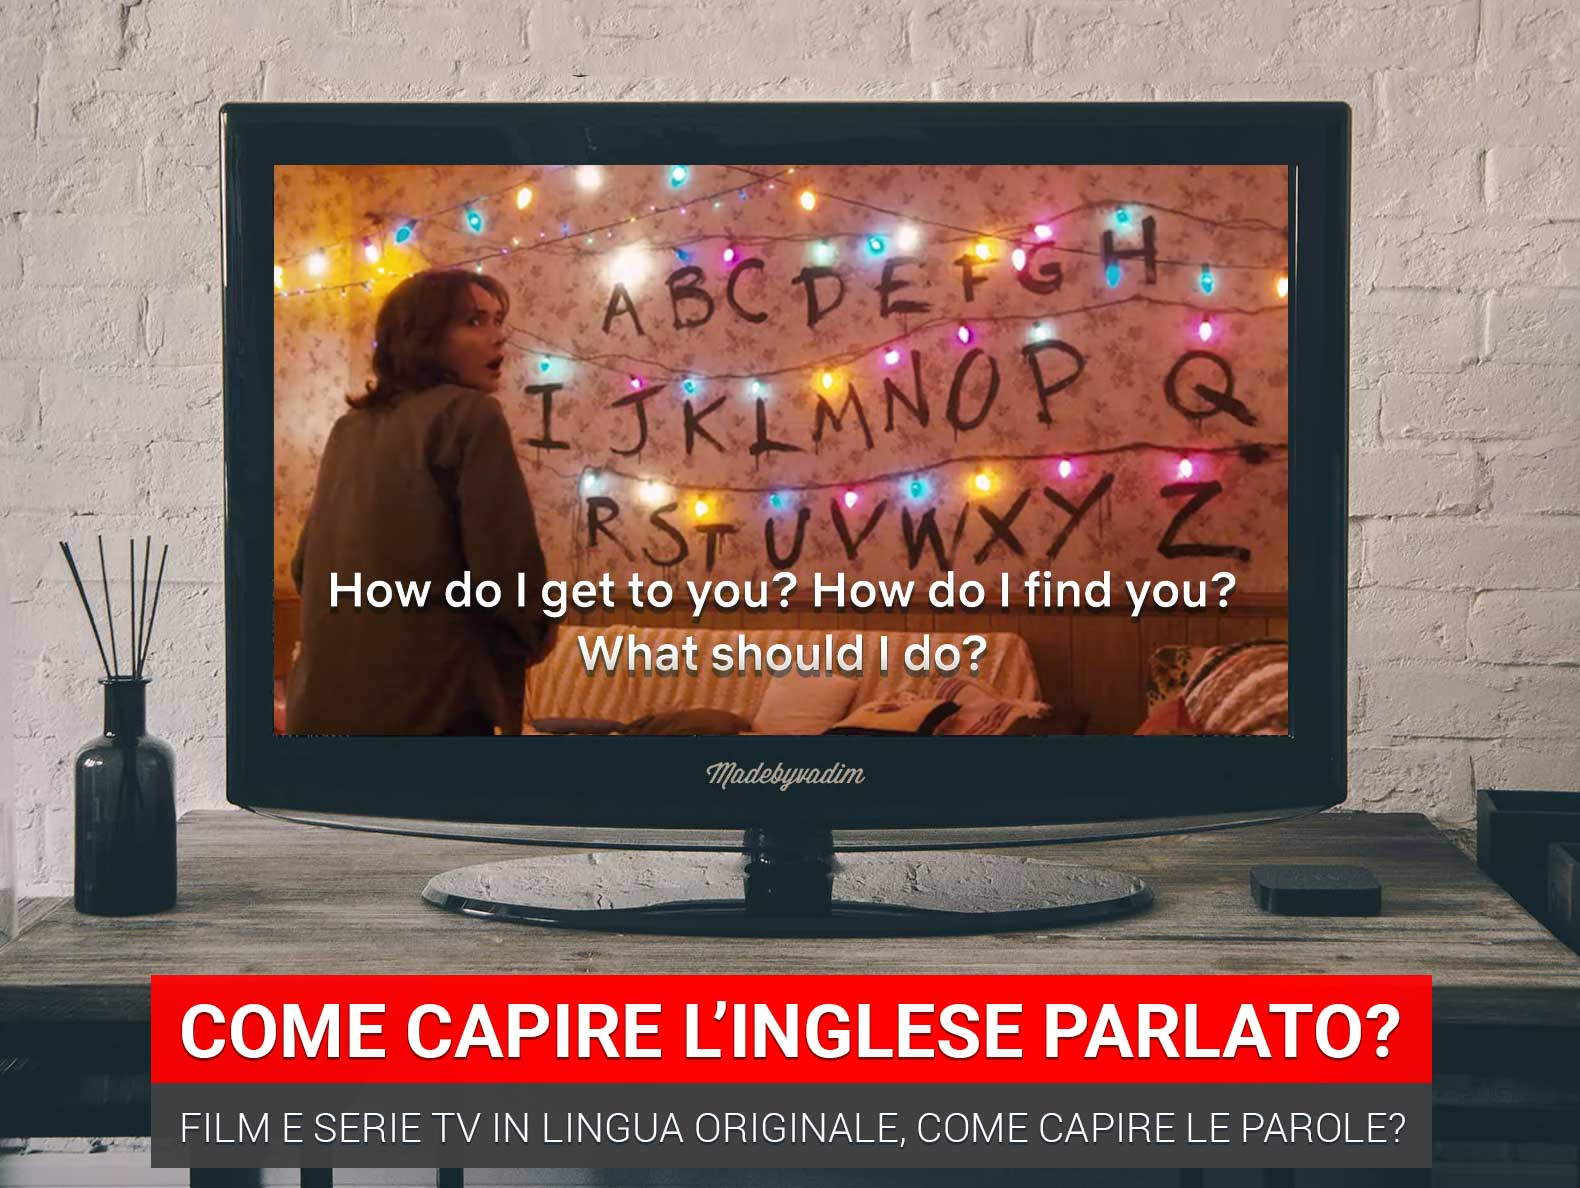 capire-inglese-parlato-serie-tv-film